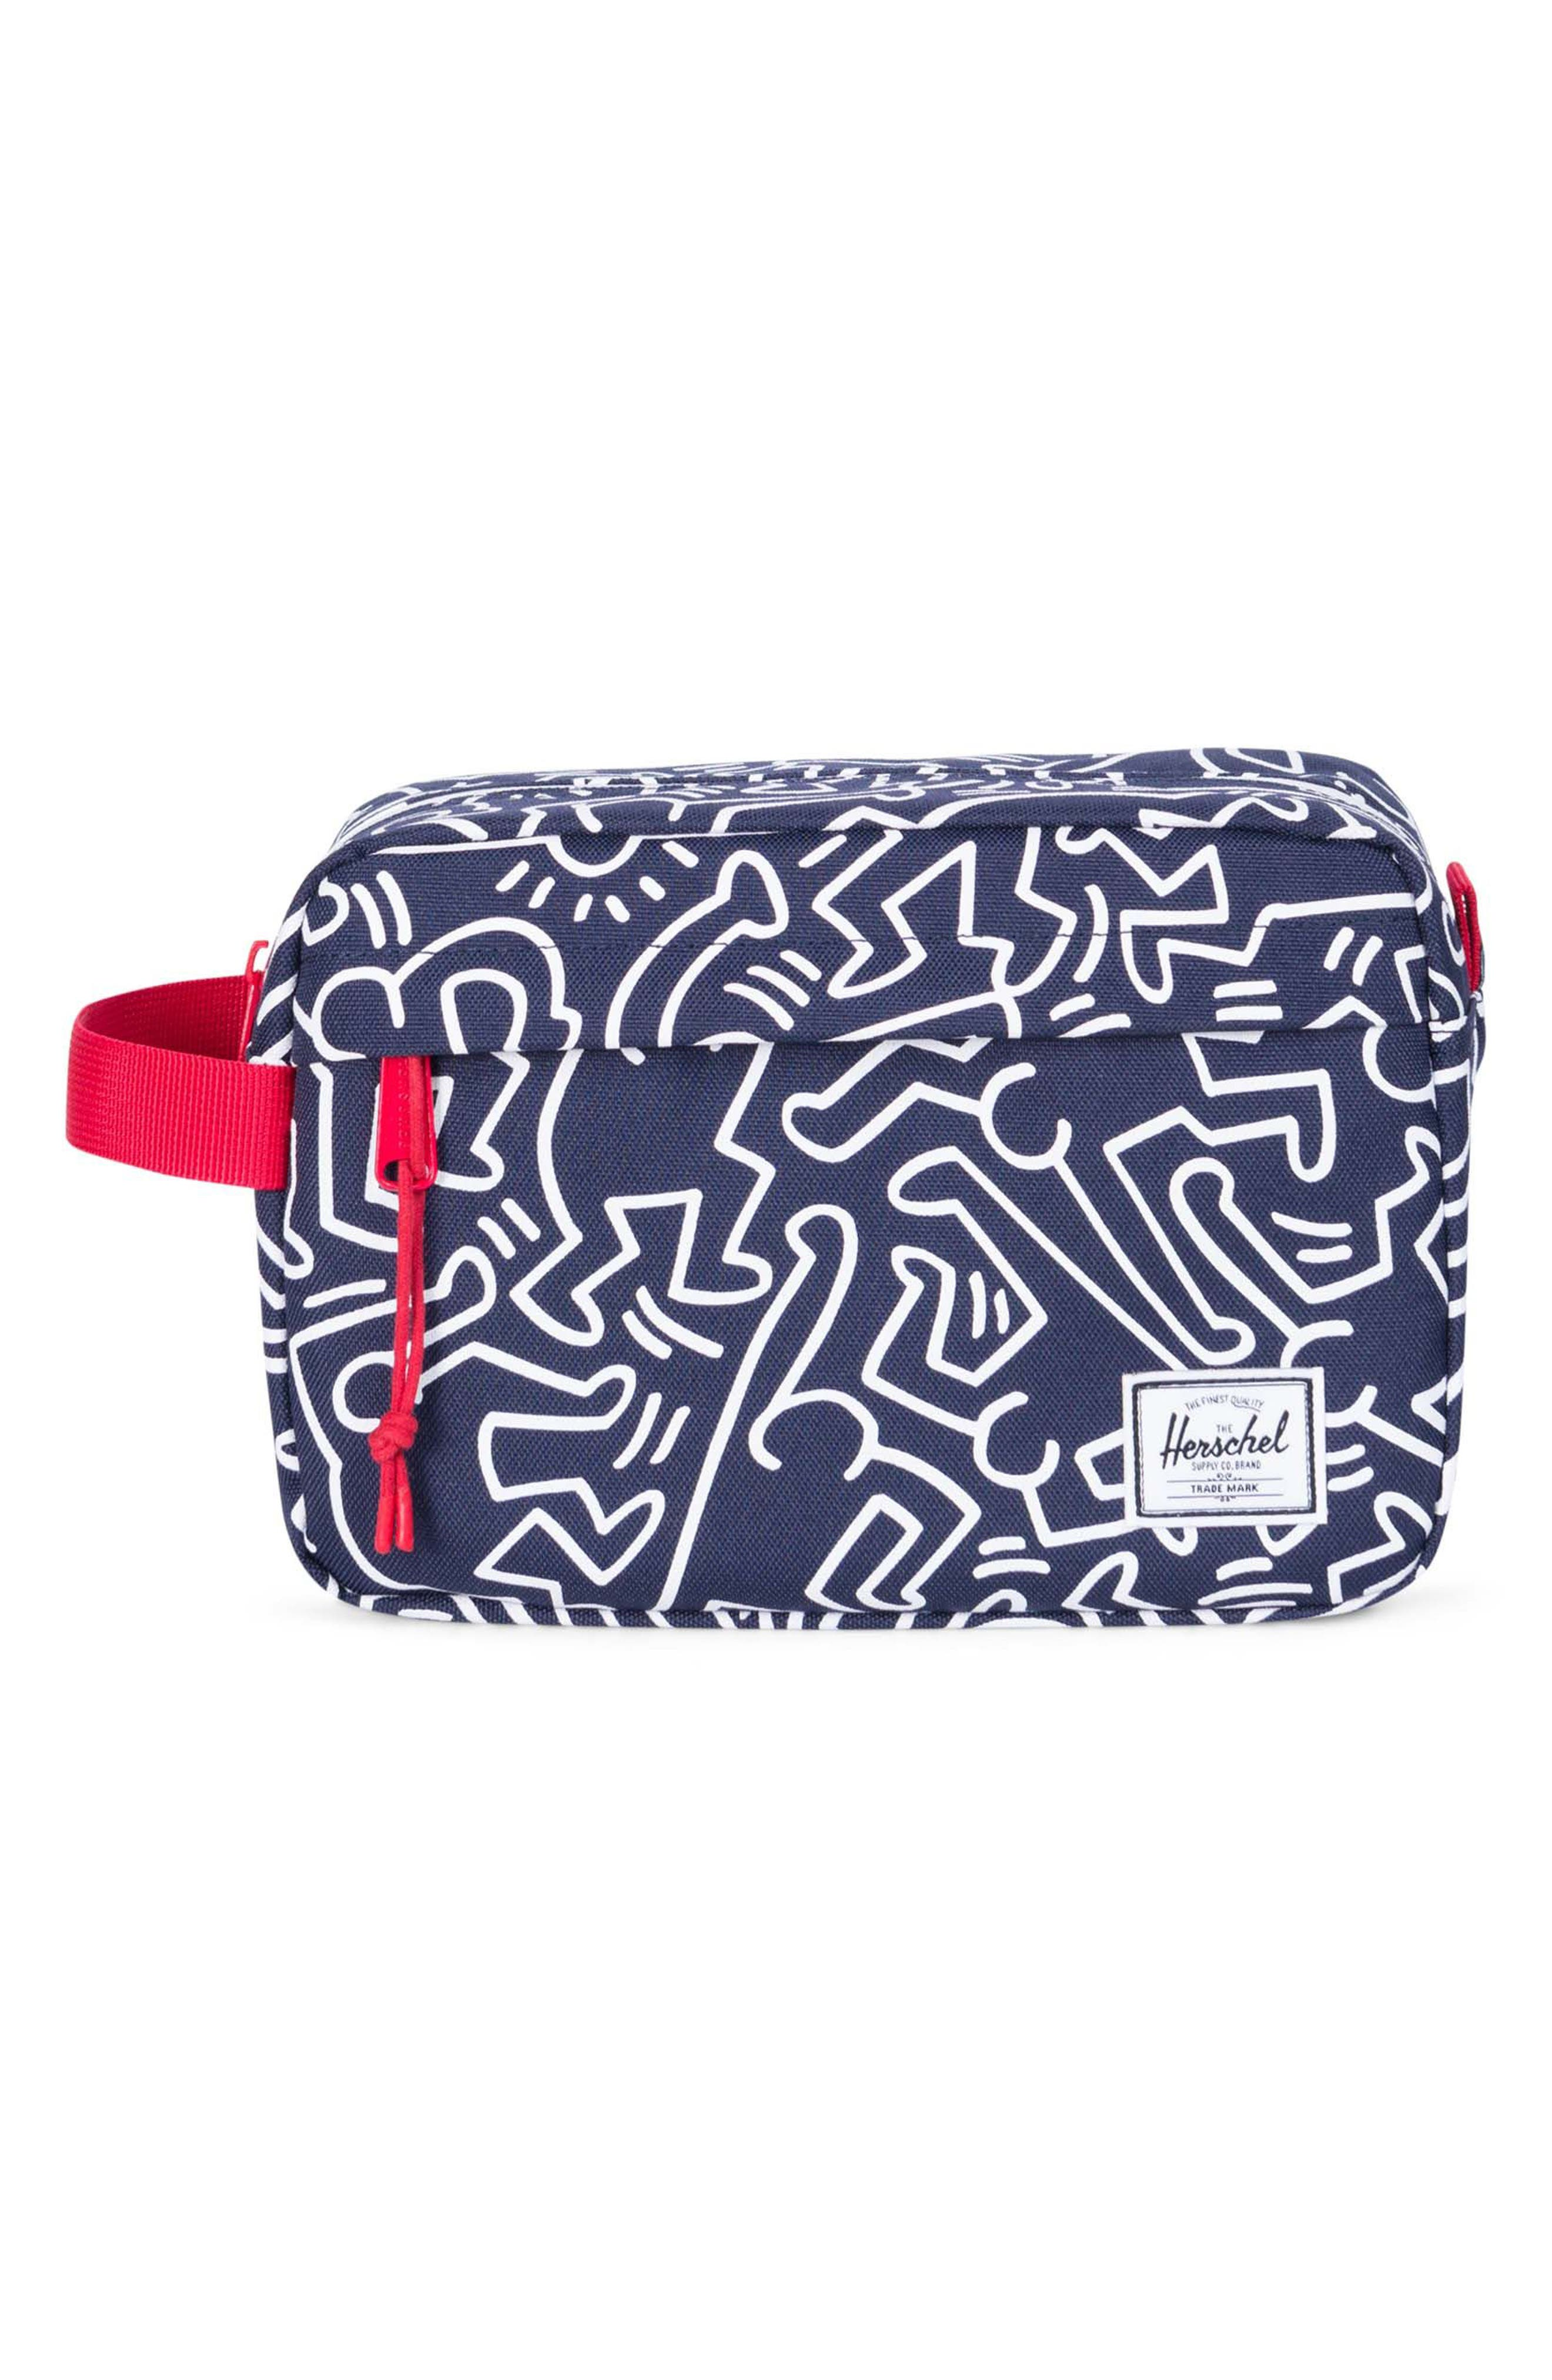 Herschel Supply Co. Chapter x Keith Haring Travel Kit